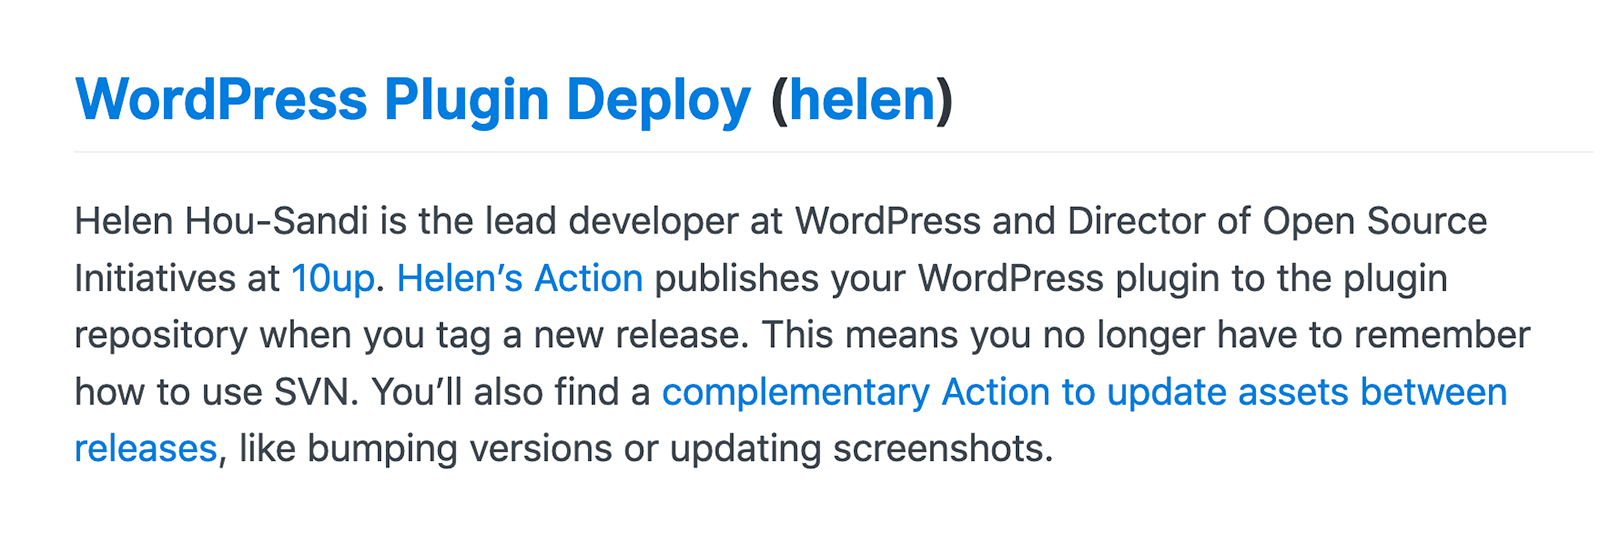 WordPress Plugin Deploy Mention on the GitHub Blog